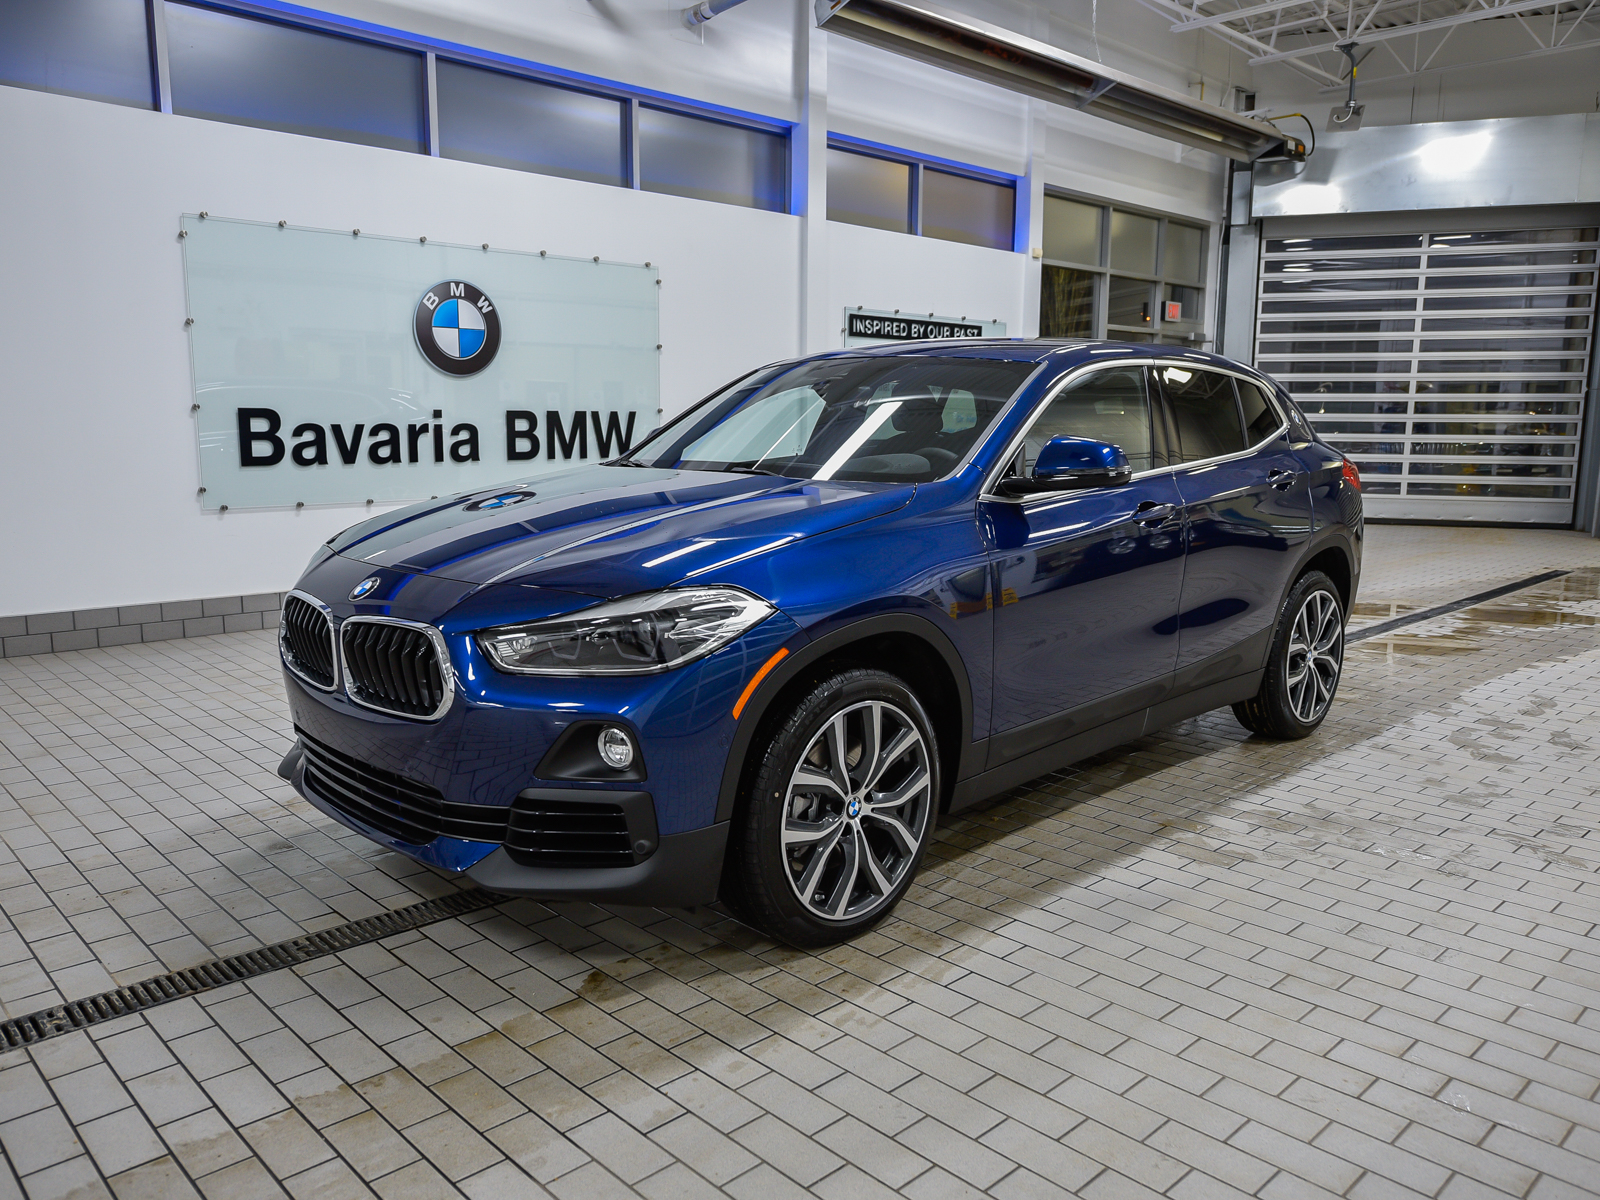 New 2019 Bmw X2 Xdrive 28i Crossover In Edmonton 19x22932 Bavaria Bmw